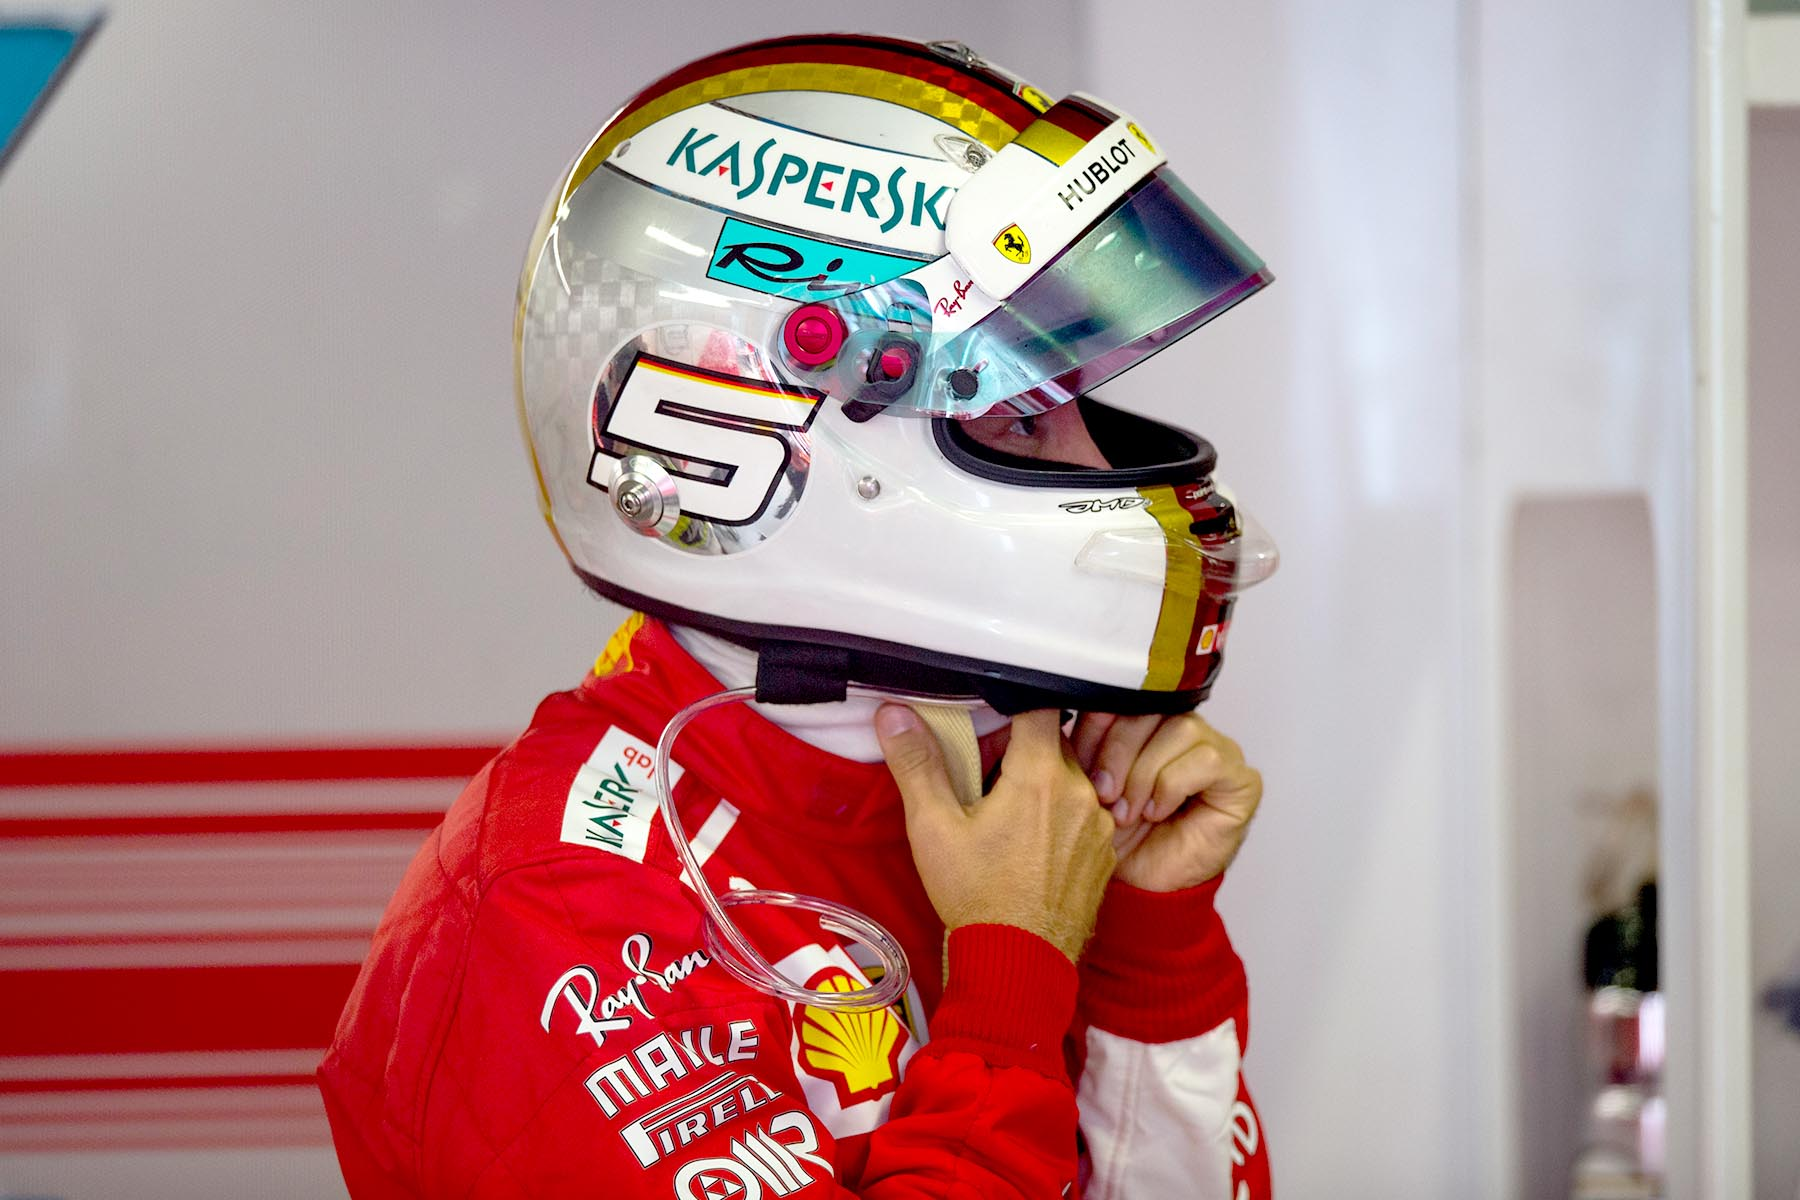 Sebastian Vettel in his garage at the 2018 Italian Grand Prix.